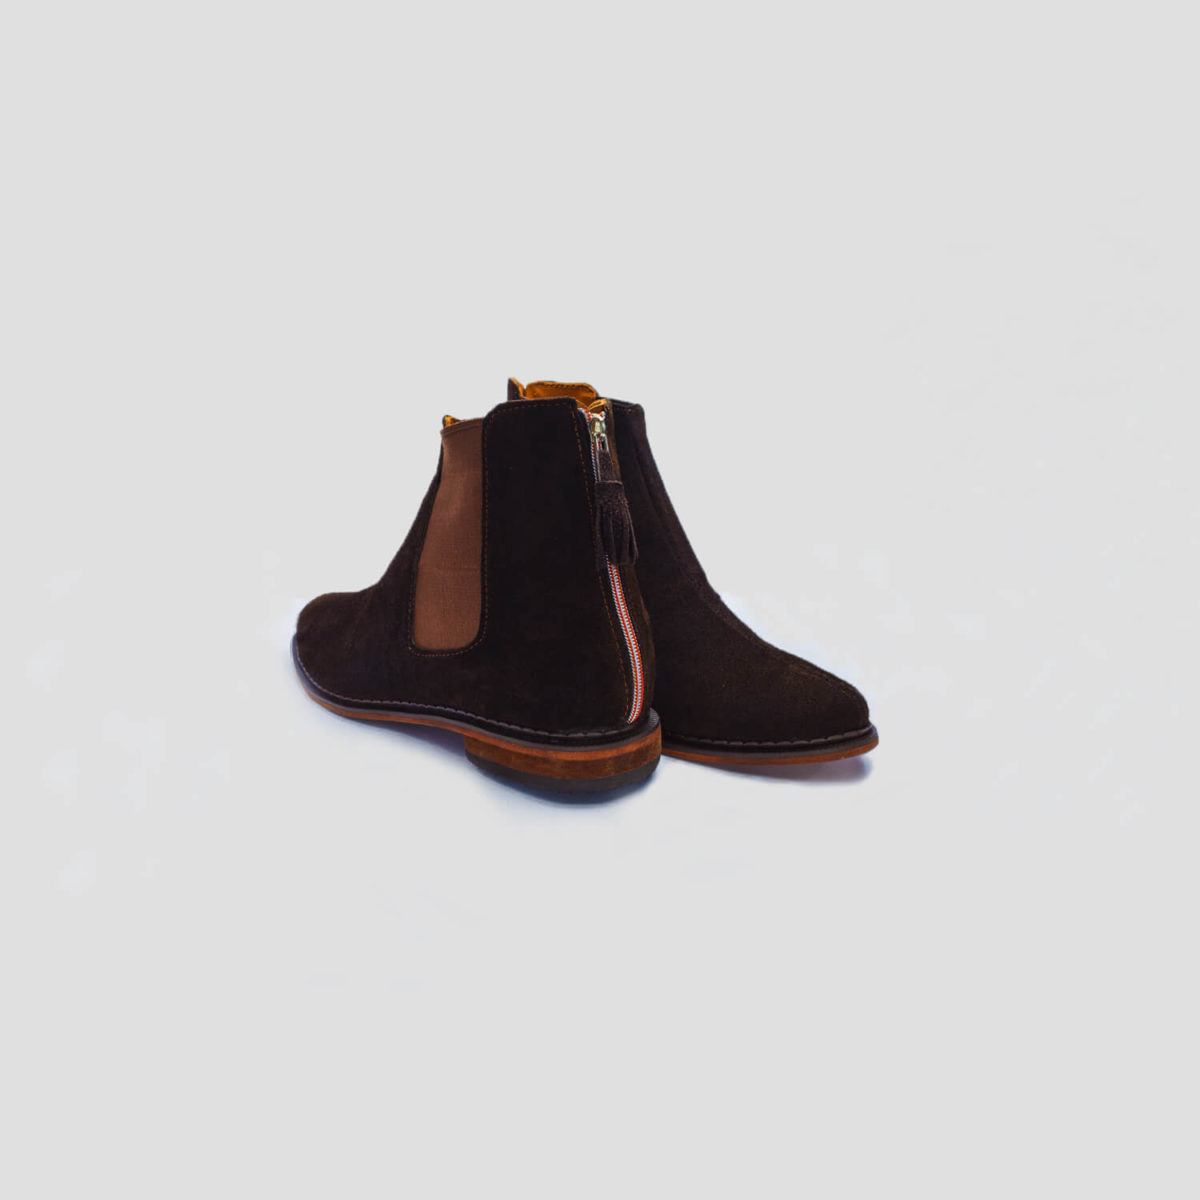 chelsea boots brown suede zippers zorkle shoes lagos nigeria